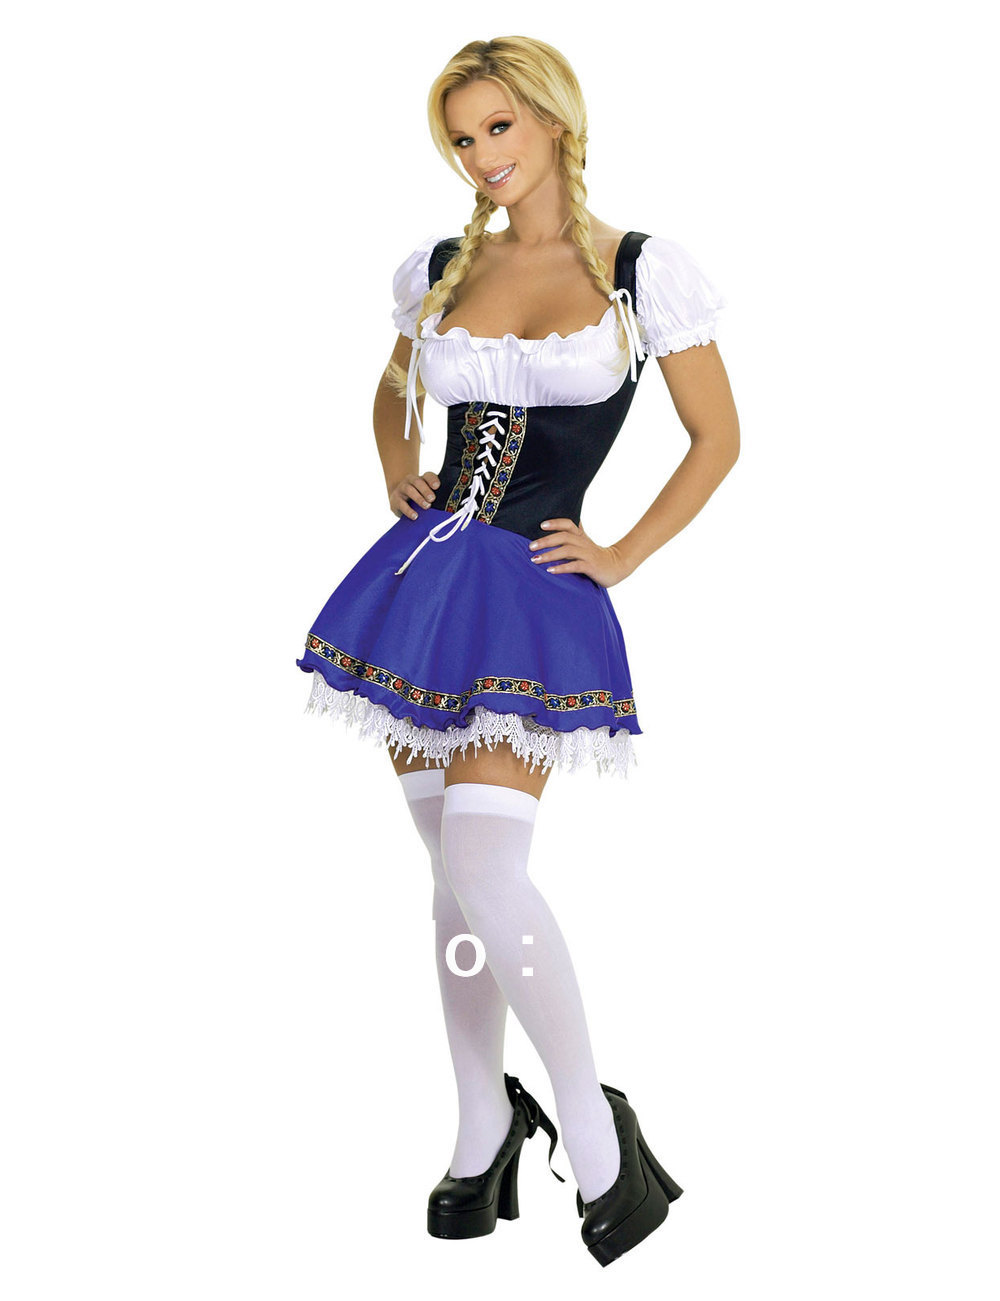 UTMEON-Sexy Blue Beer Costume Girl Wench Maiden Costume German Oktoberfest Costume Fancy Dress